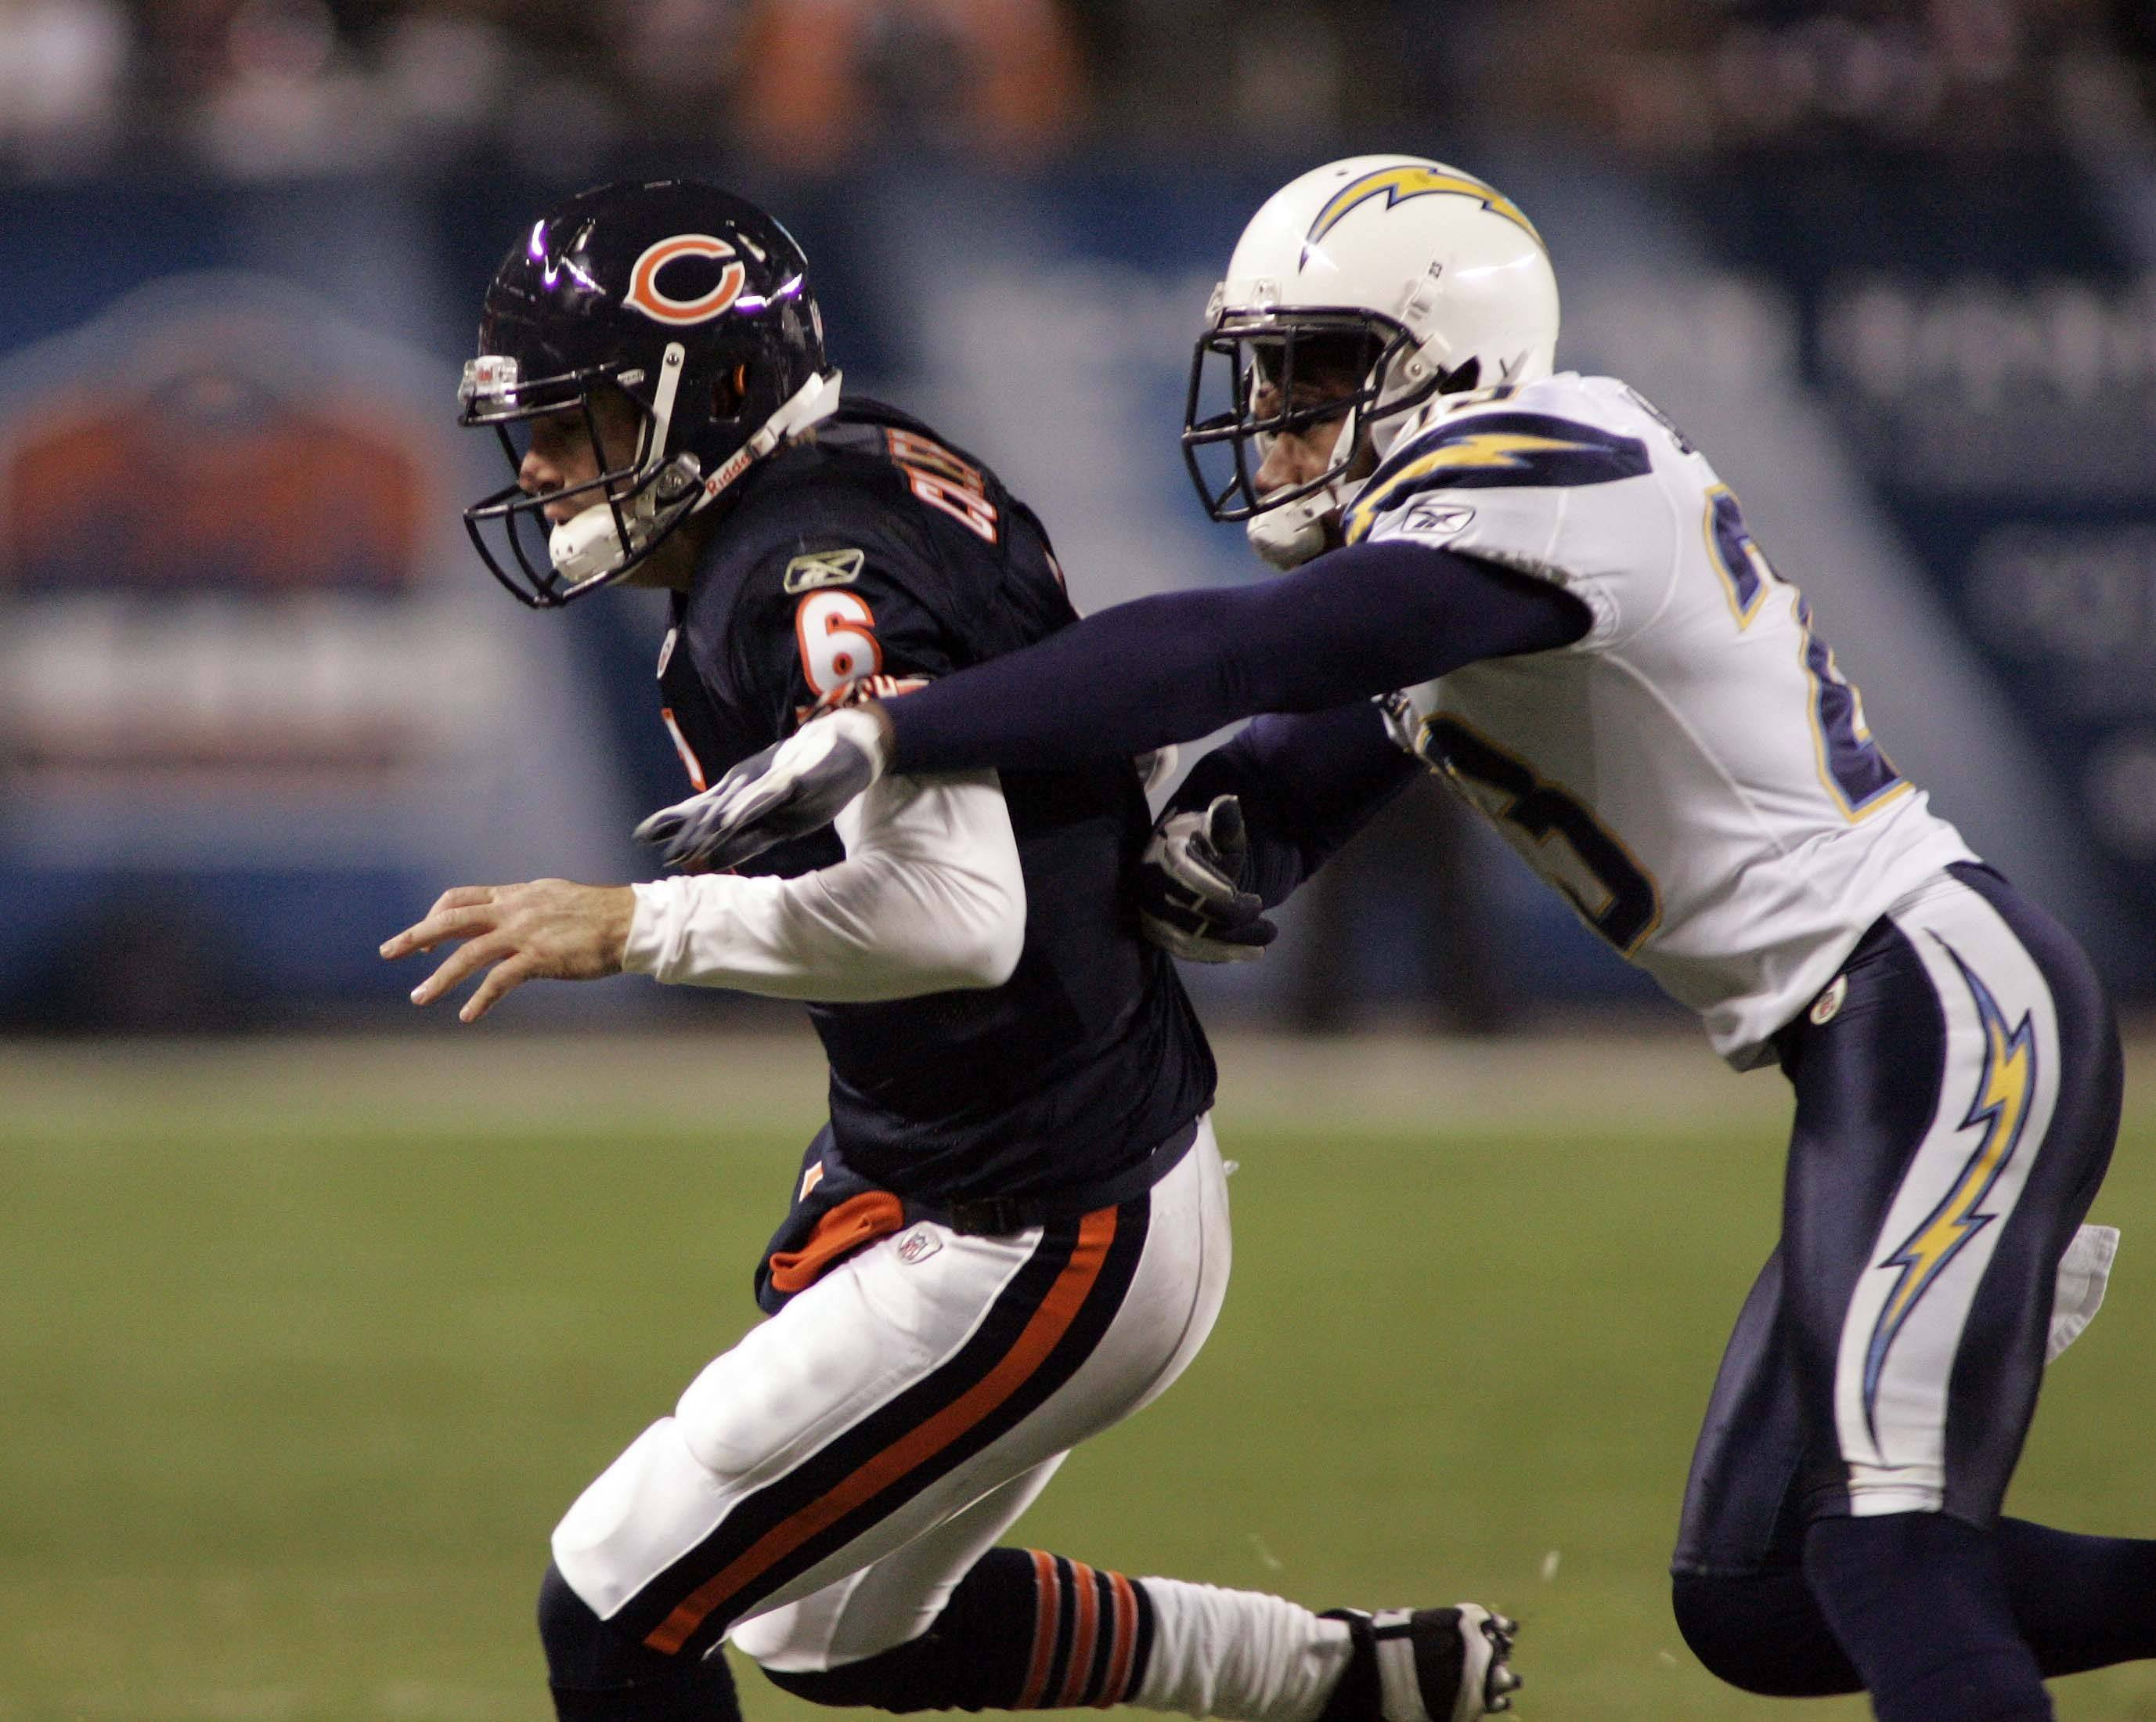 Bears quarterback Jay Cutler looks for some running room in the fourth quarter during Sunday's game at Soldier Field in Chicago.